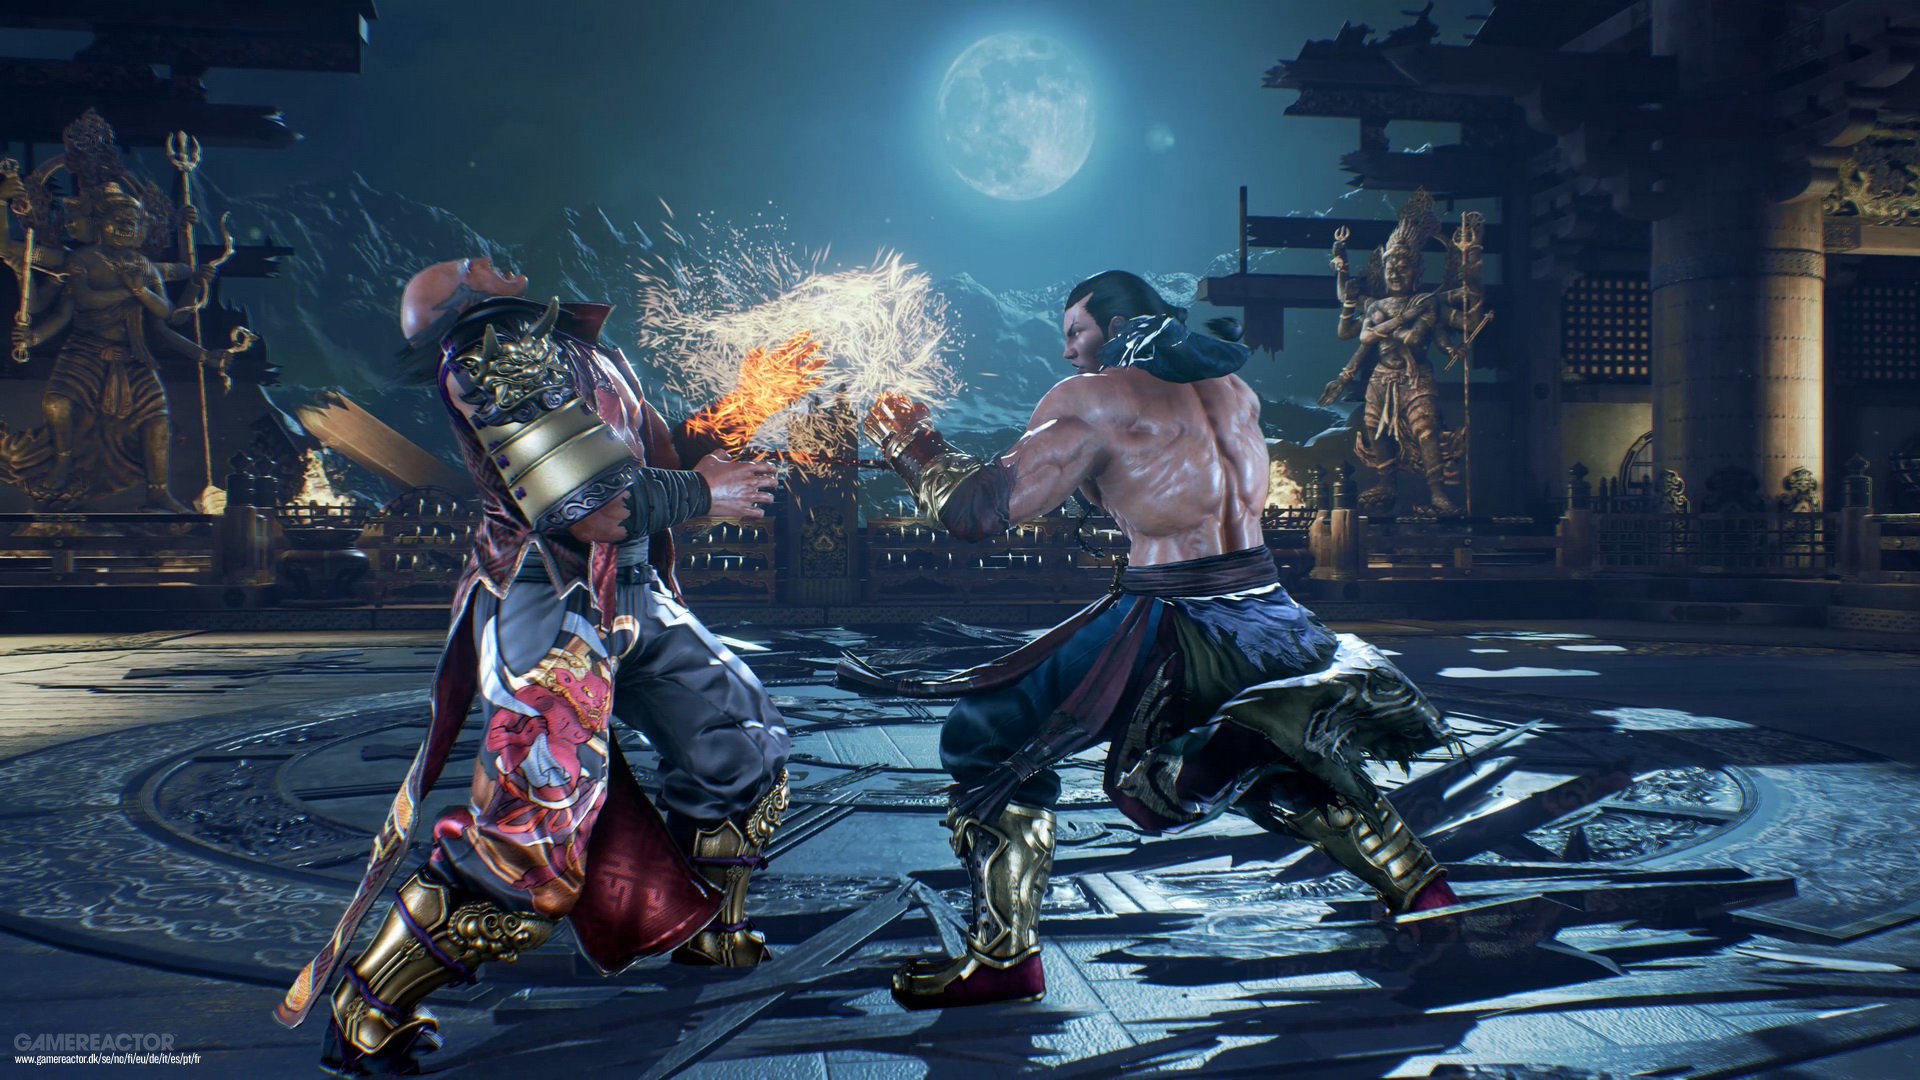 Tekken 7 Ps4 Pro And Xbox One Resolutions Unveiled